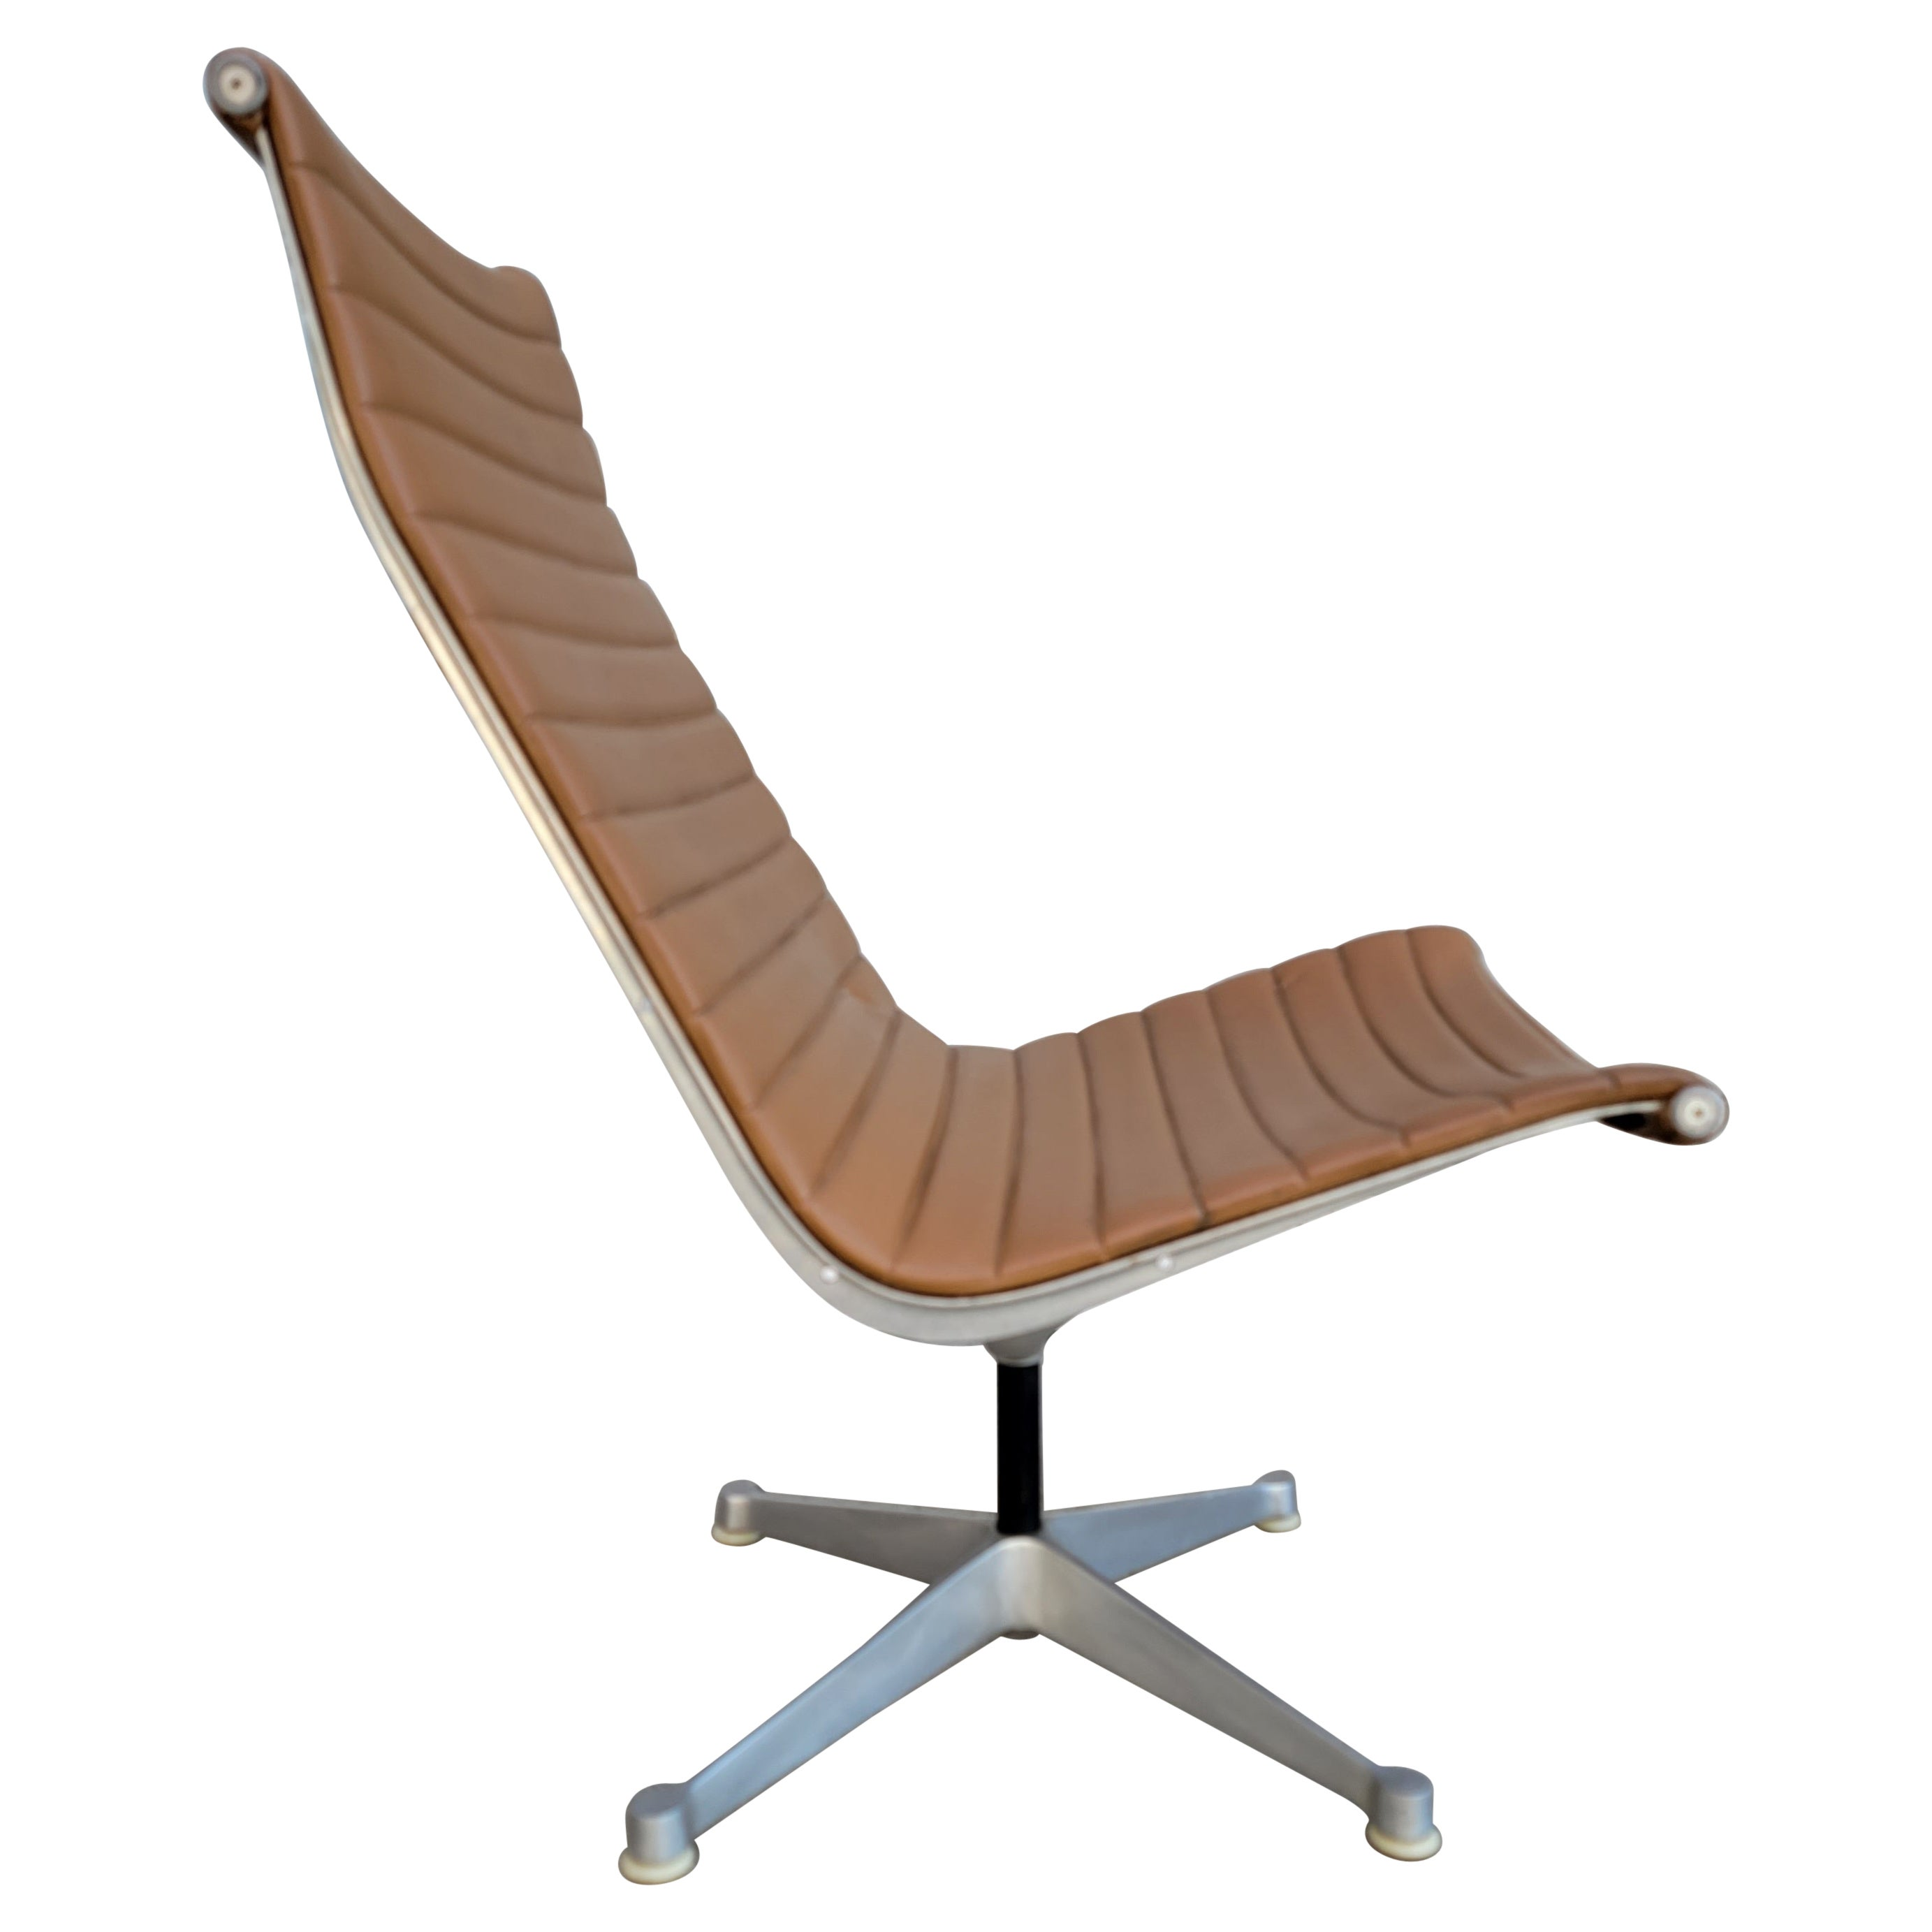 Early Eames Aluminum Group Swivel Chair